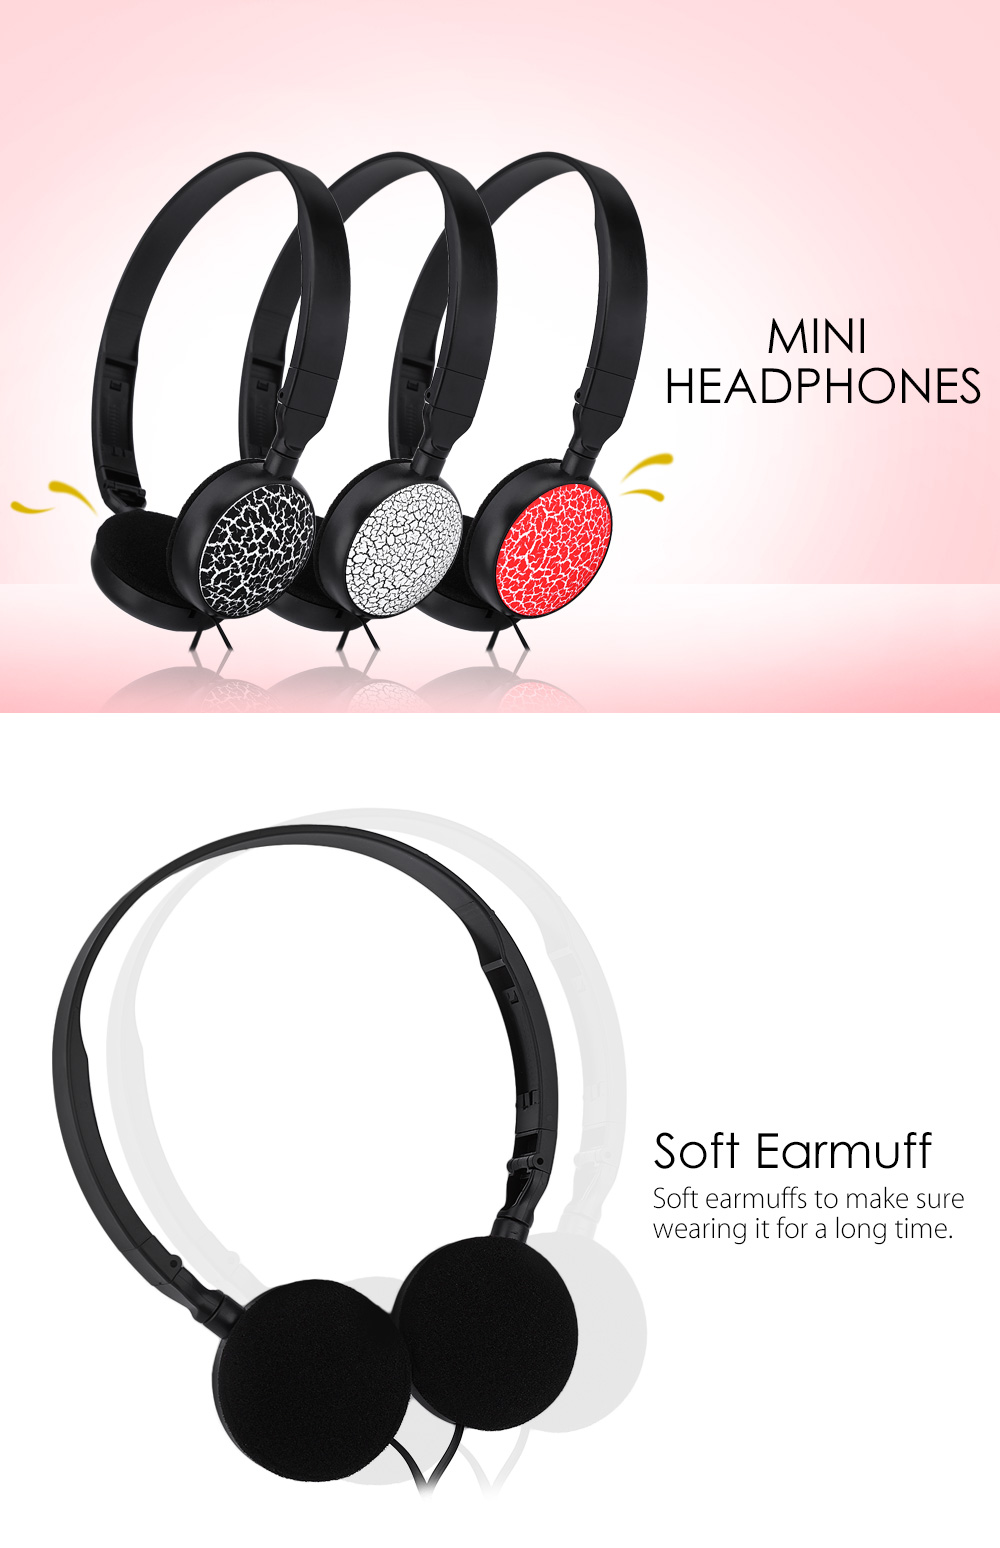 Ms 174 Mini Wired Stereo Music Headset On Ear Headphones 395 Ems Adjustable Headband Green Gold For Baby Earmuff Package Contents 1 X